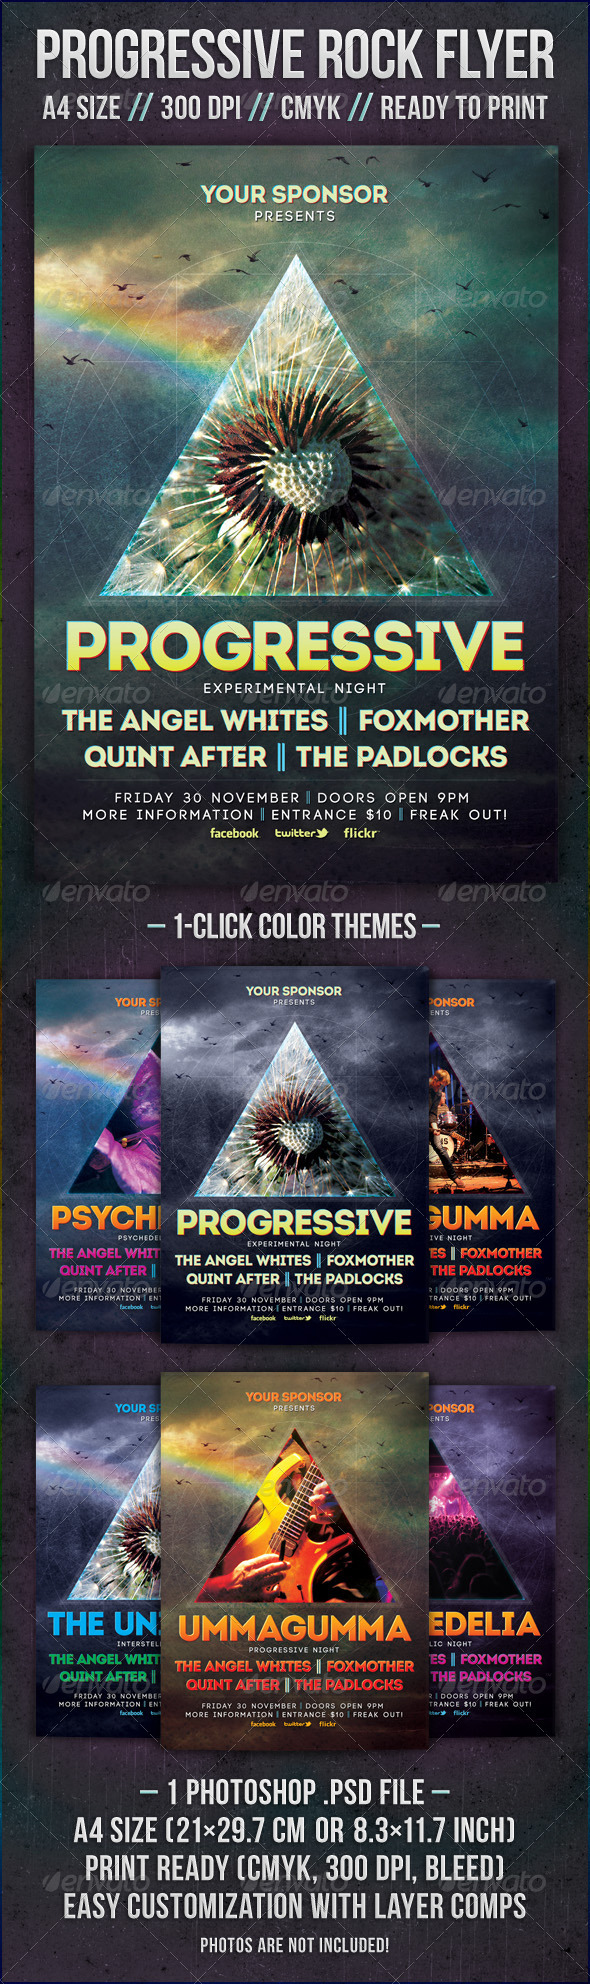 Progressive Rock Flyer - Concerts Events